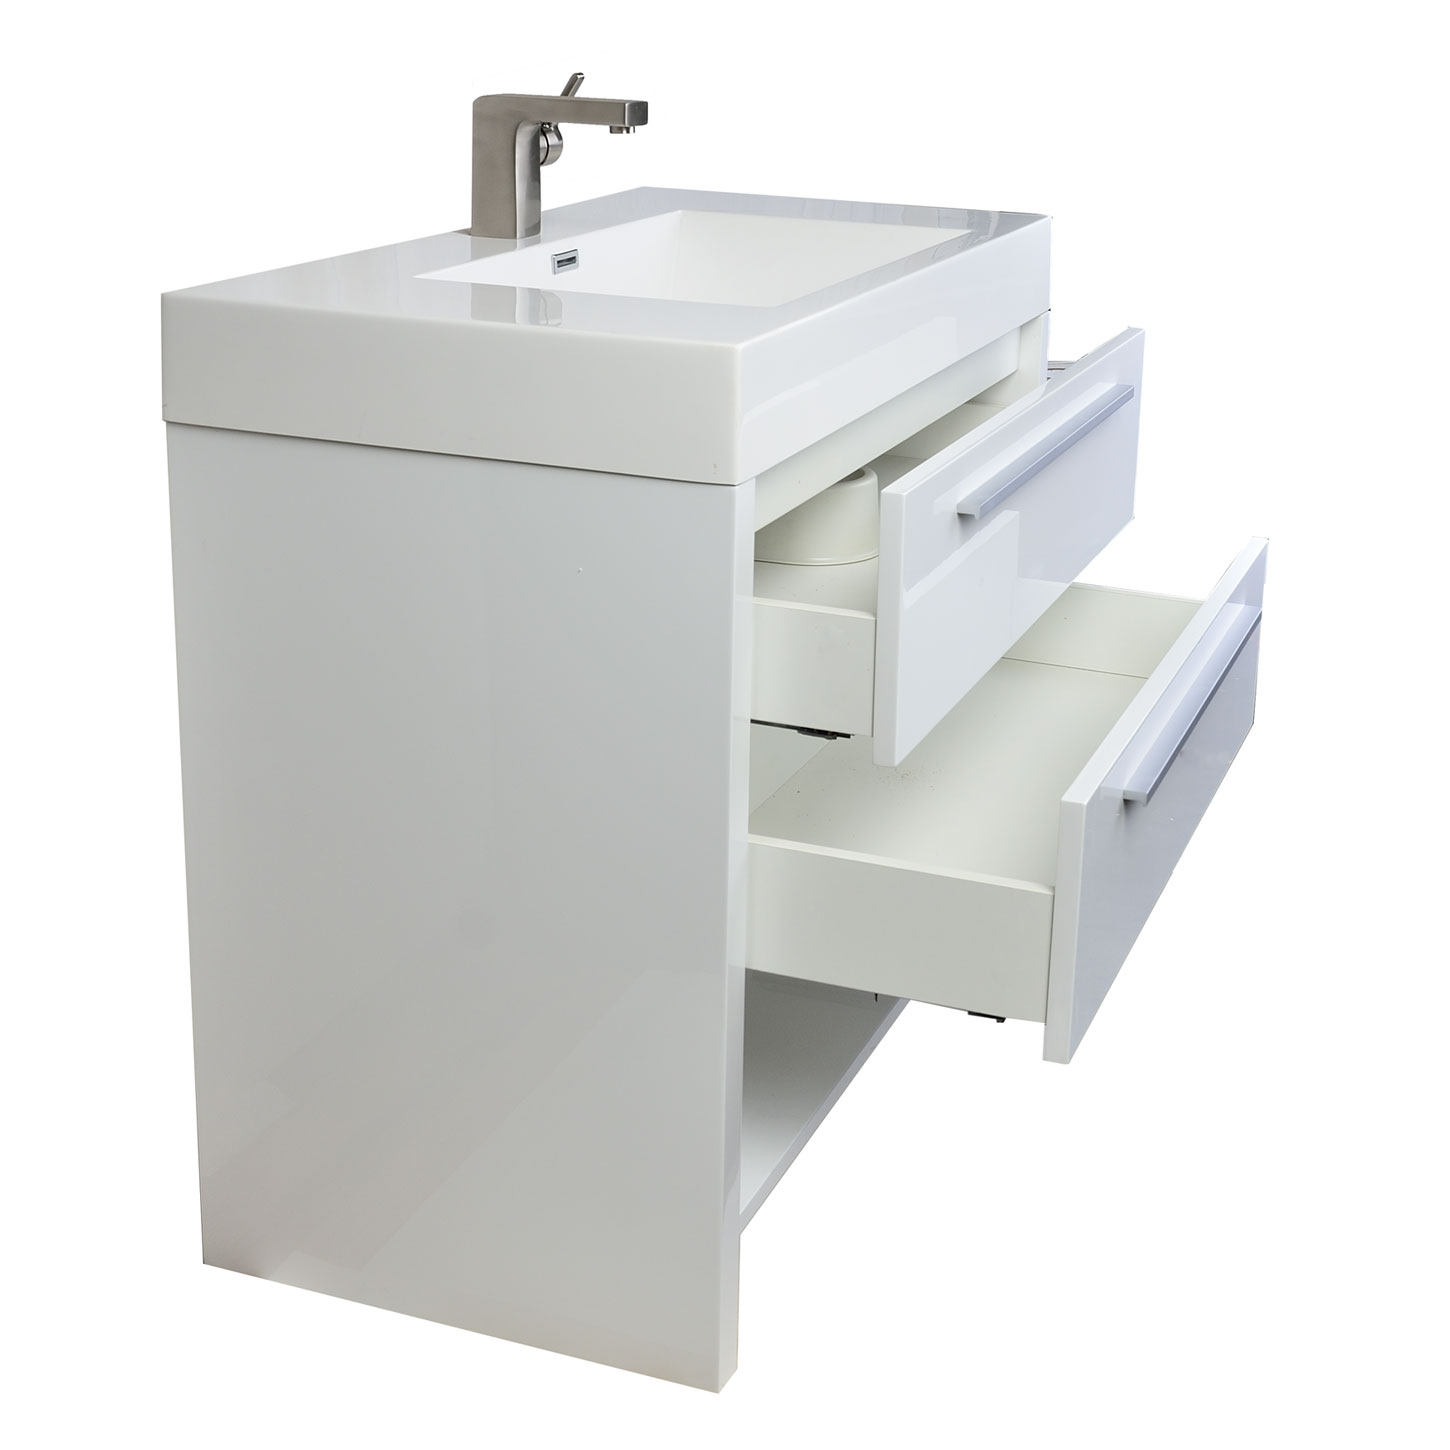 Contemporary Bathroom Vanities 36 Inch buy mula 35.5 in. modern bathroom vanity high gloss white rs-l900